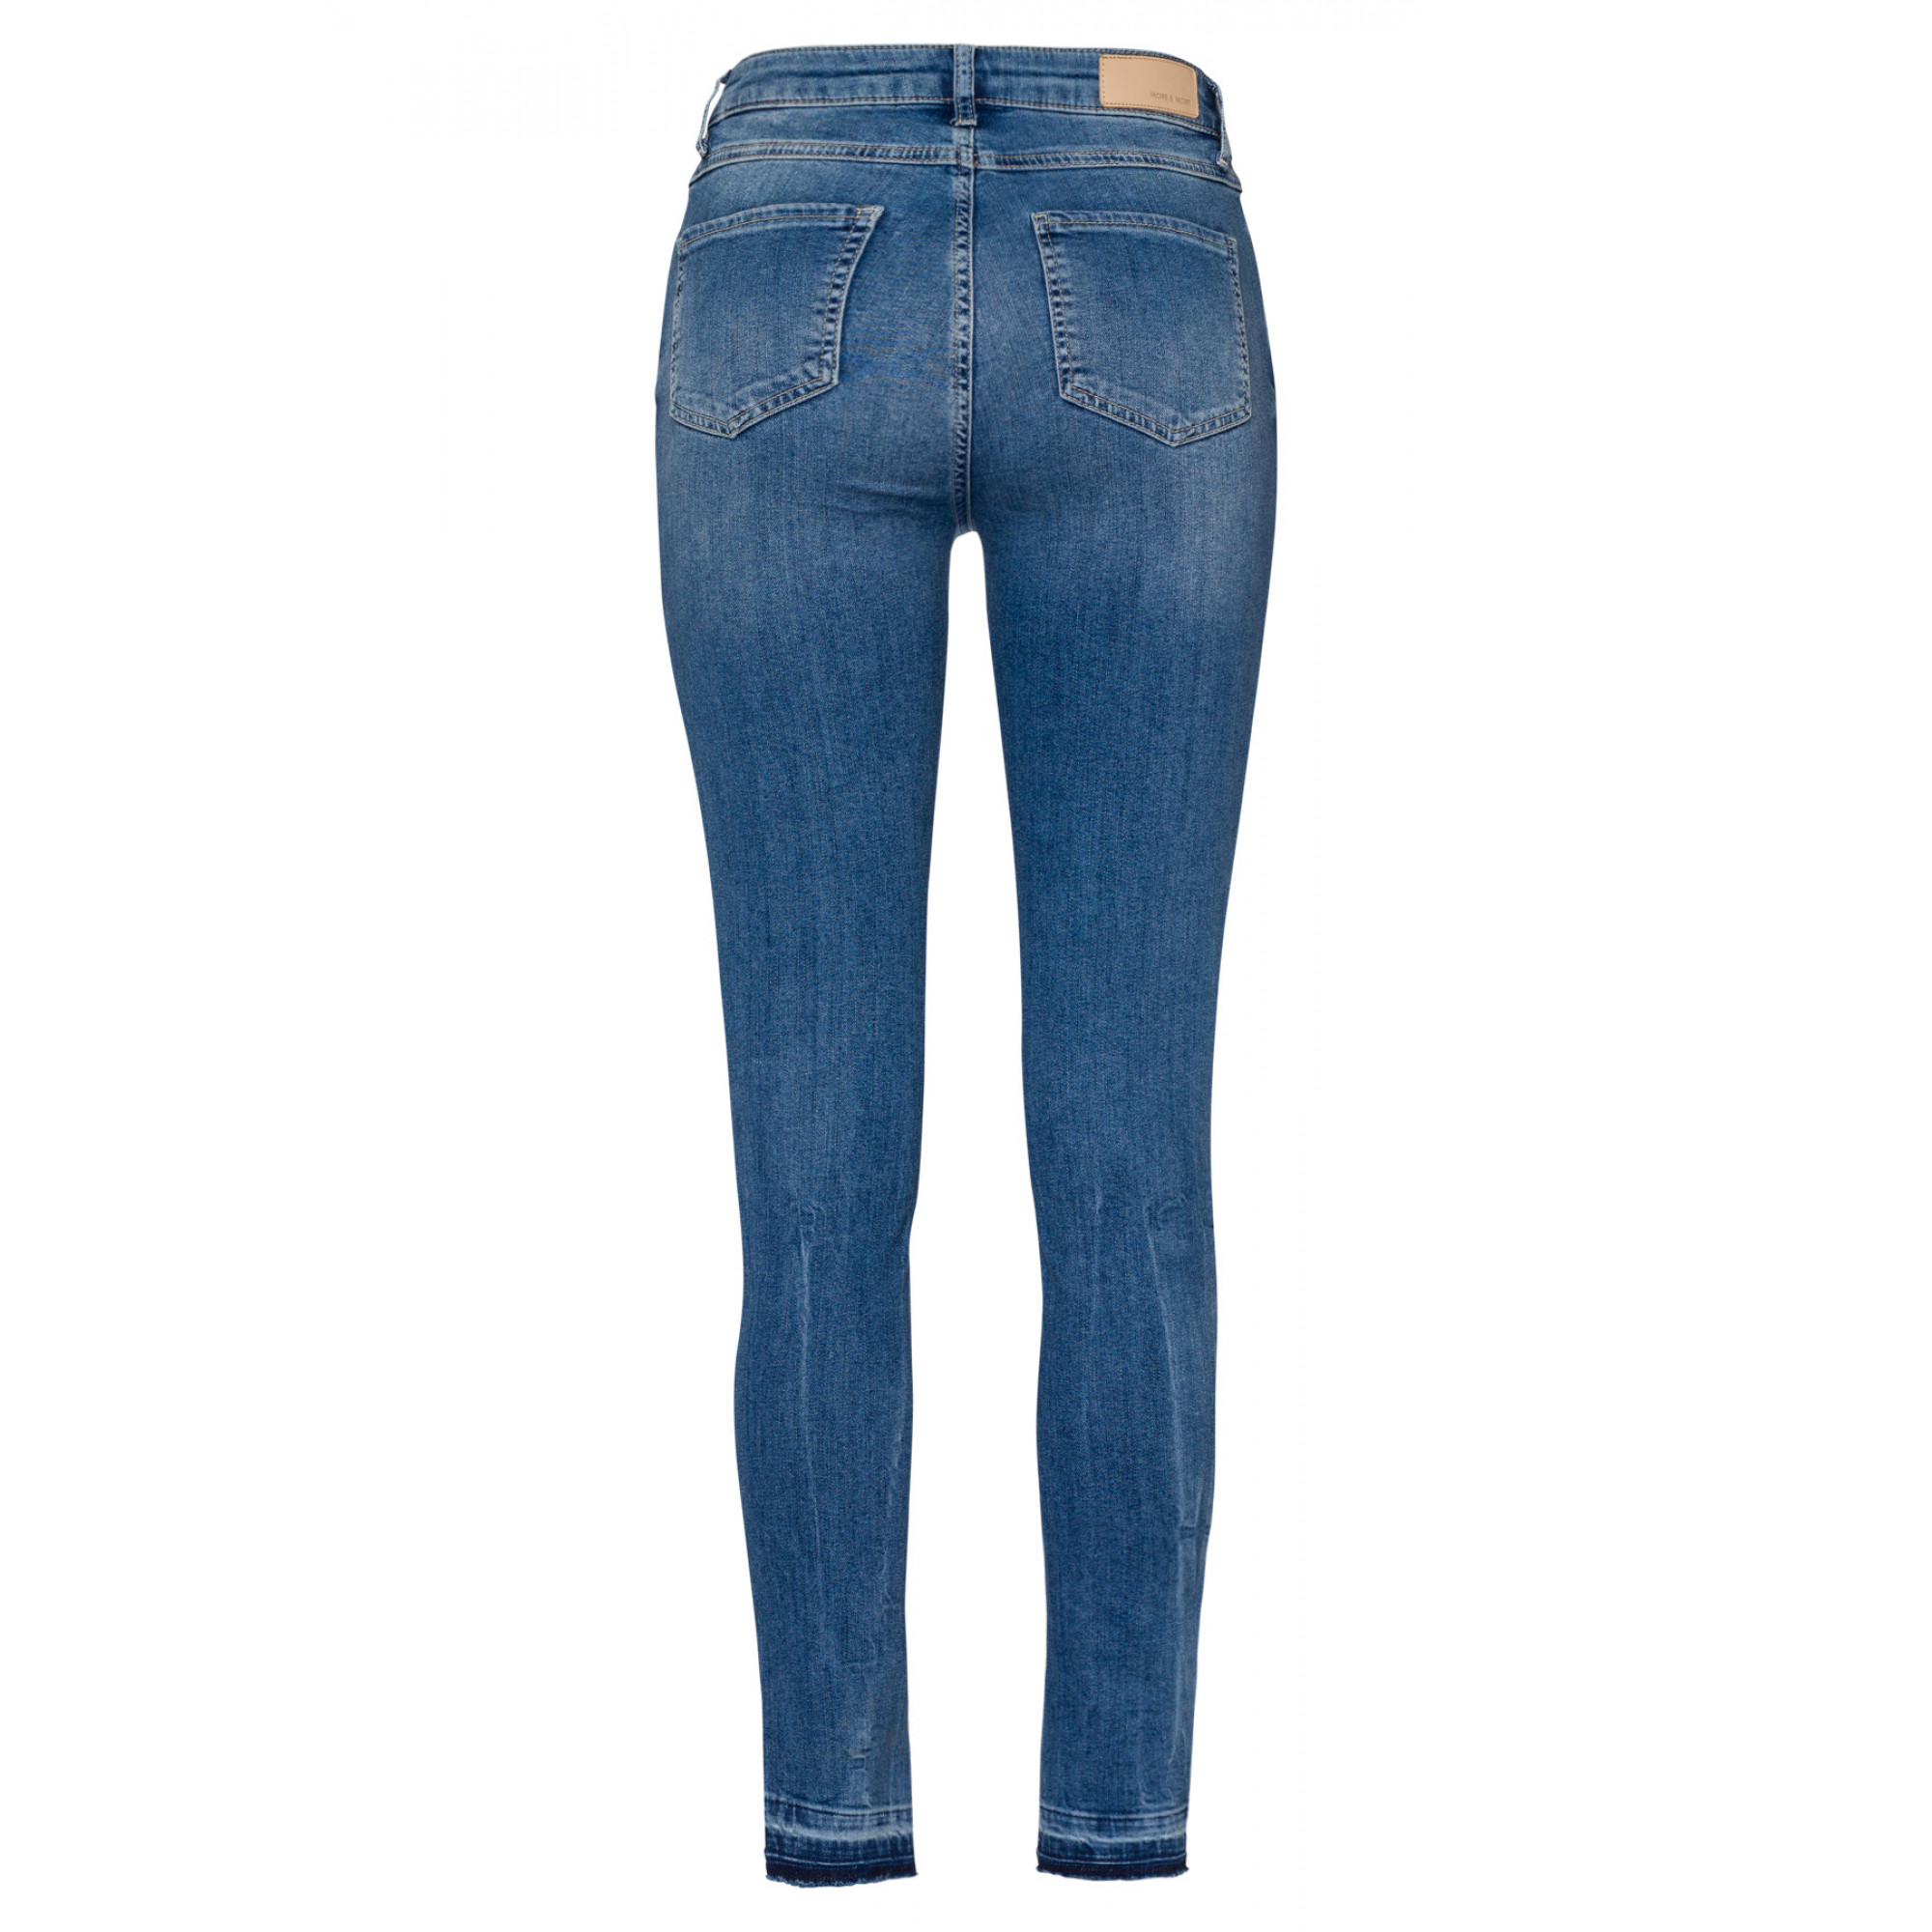 Five Pocket Jeans, Hailey 91034220-0963 2